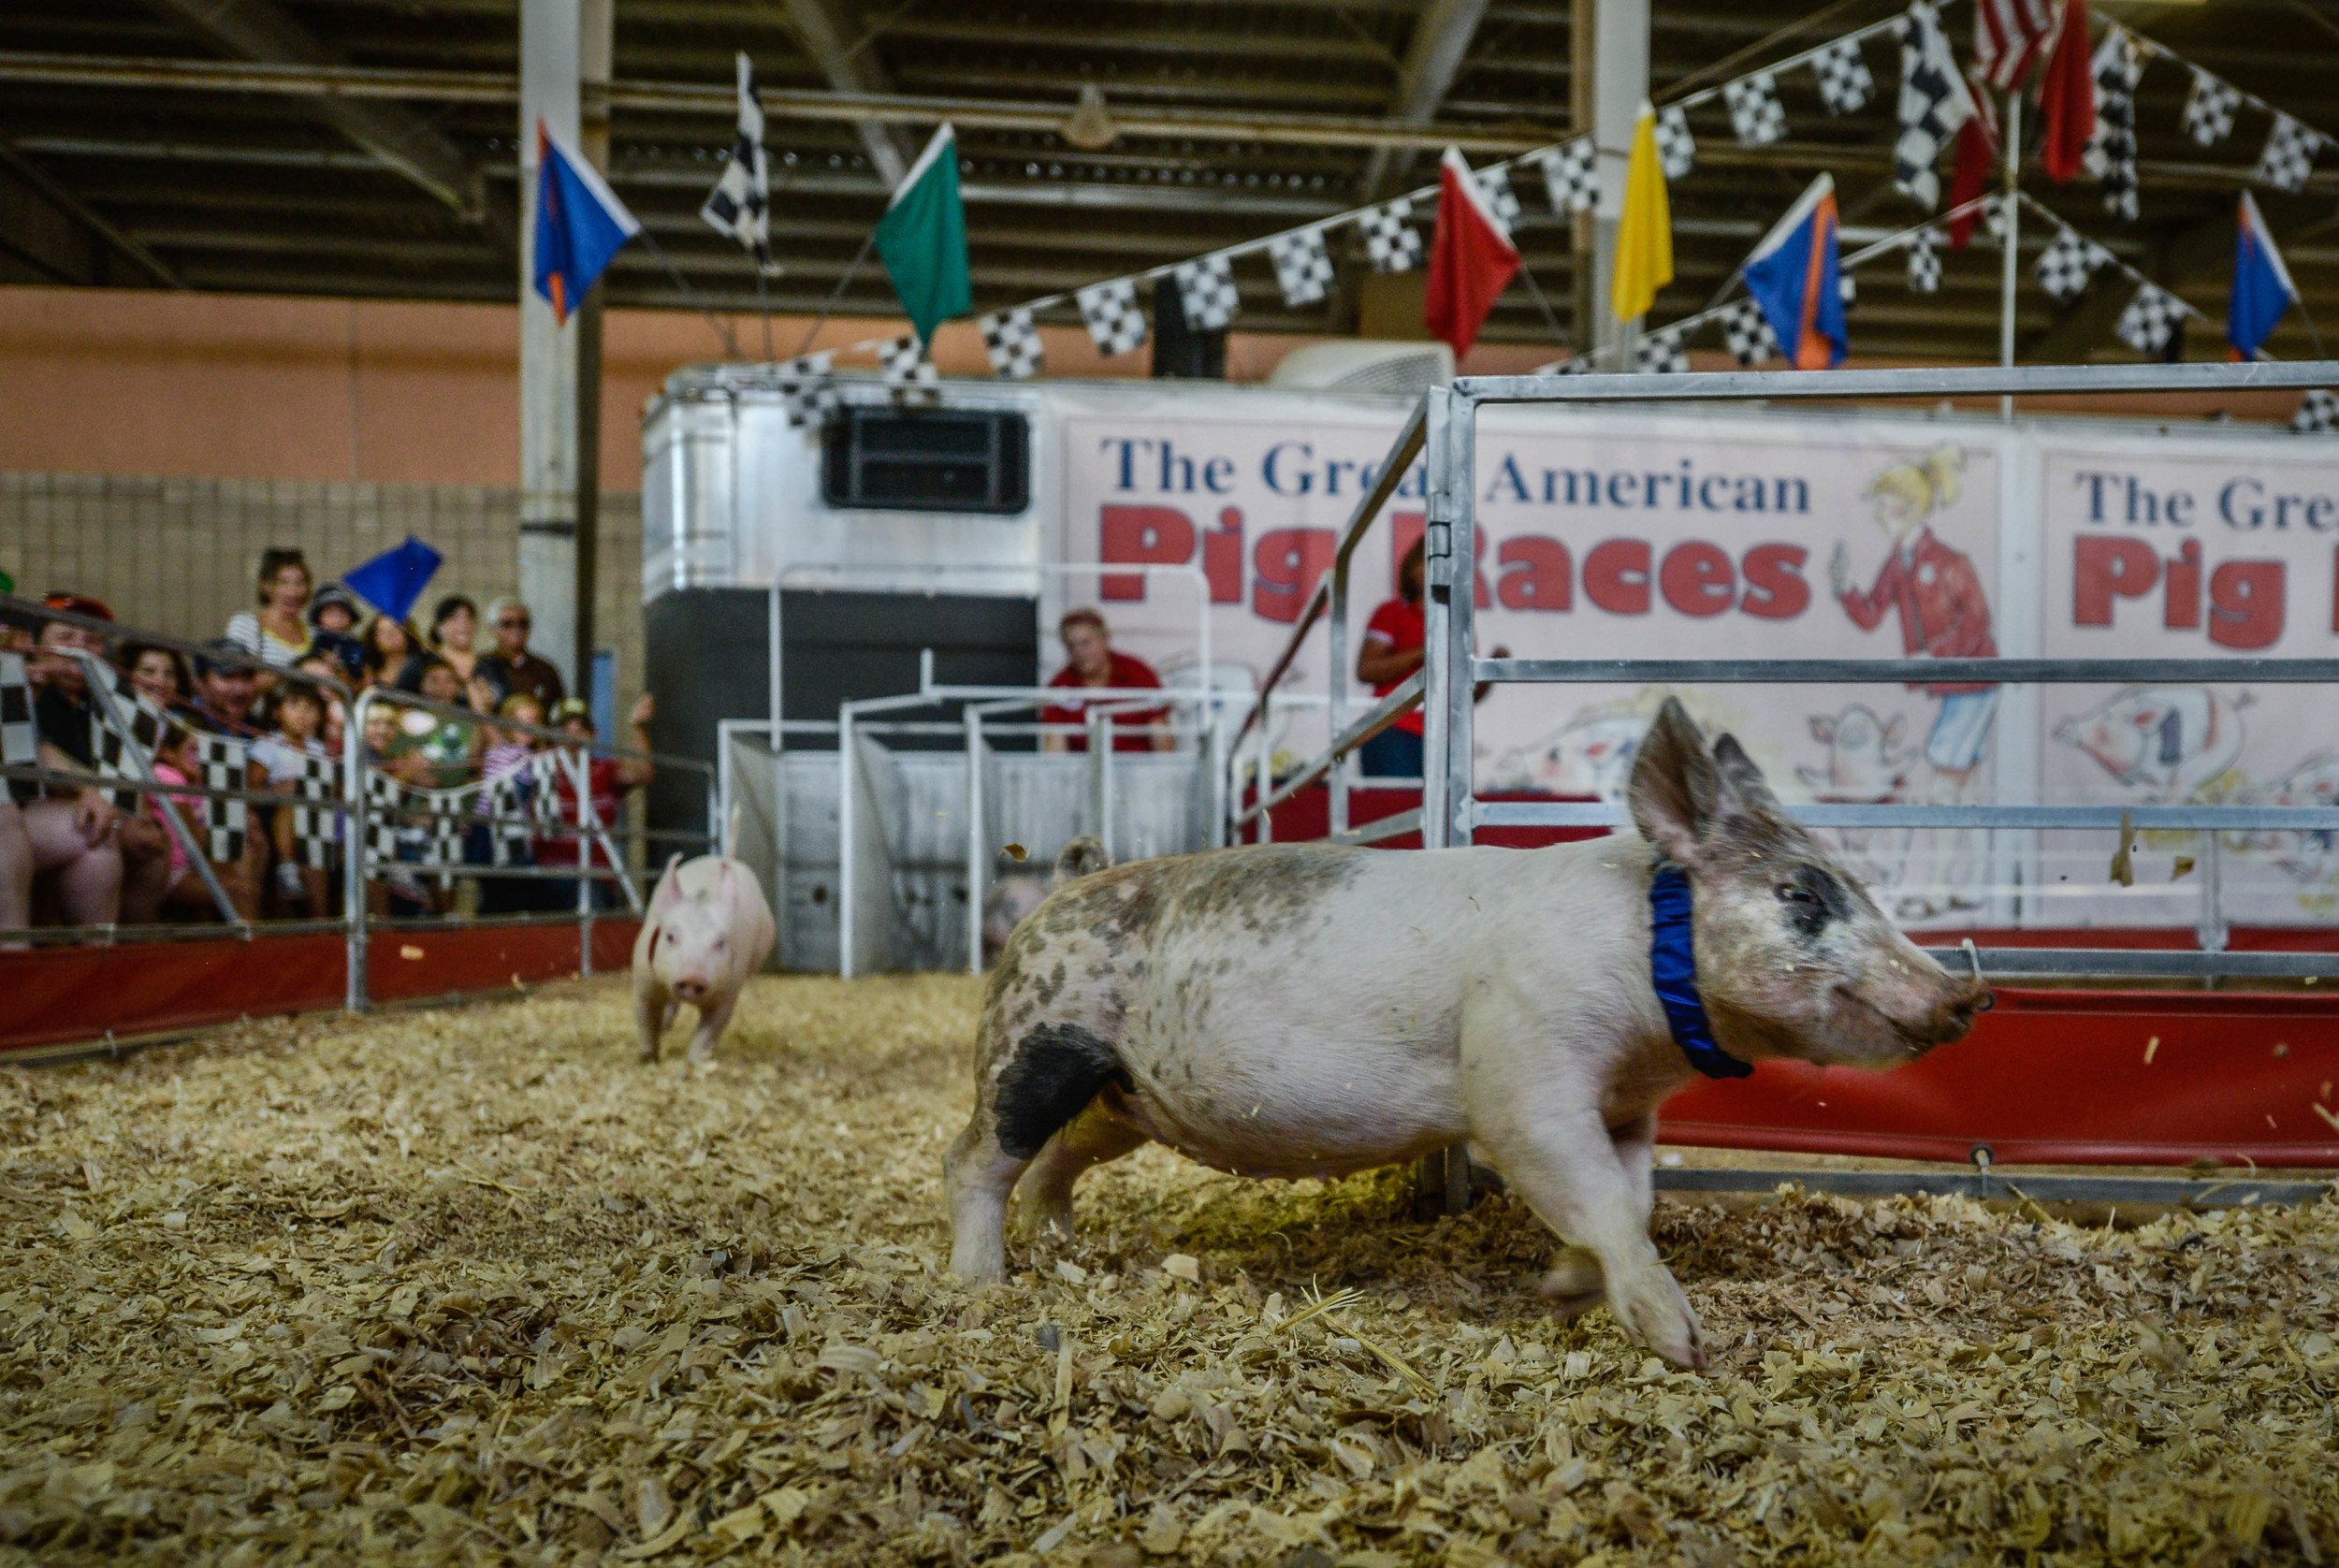 The Great American Pig Races